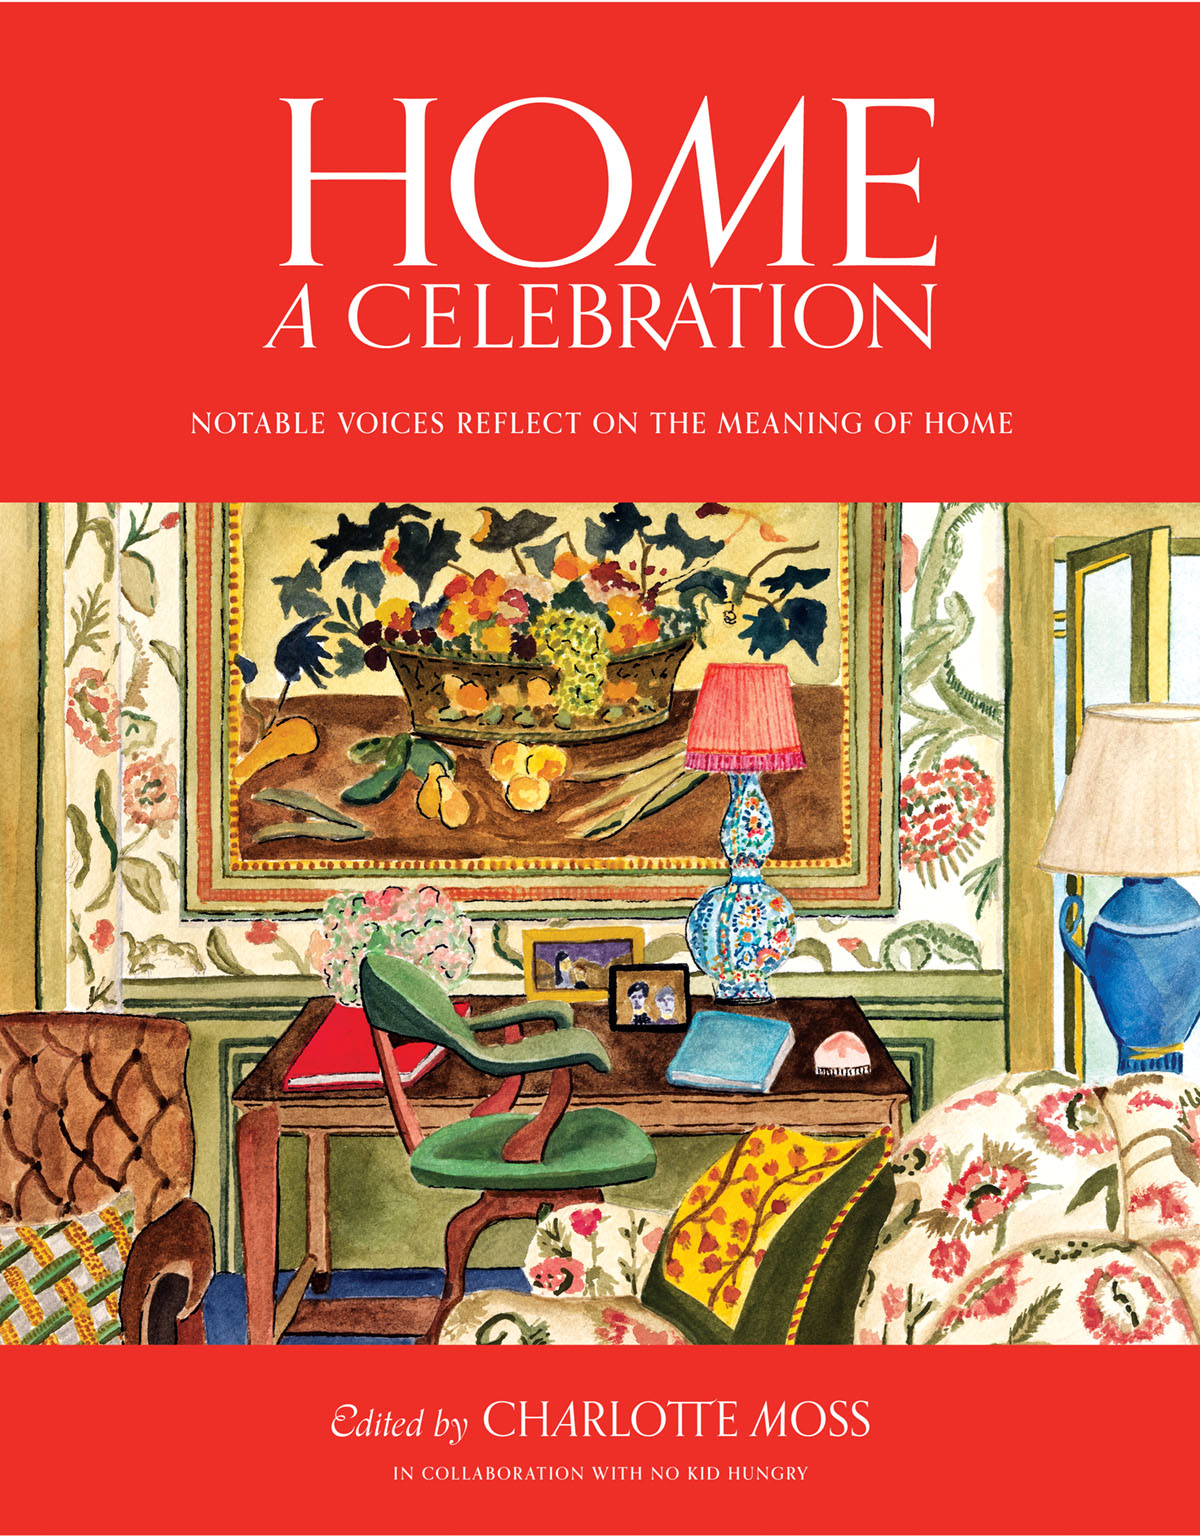 book cover: Home: A Celebration, edited by Charlotte Moss, in collaboration with No Kid Hungry (Rizzoli New York, 2021)